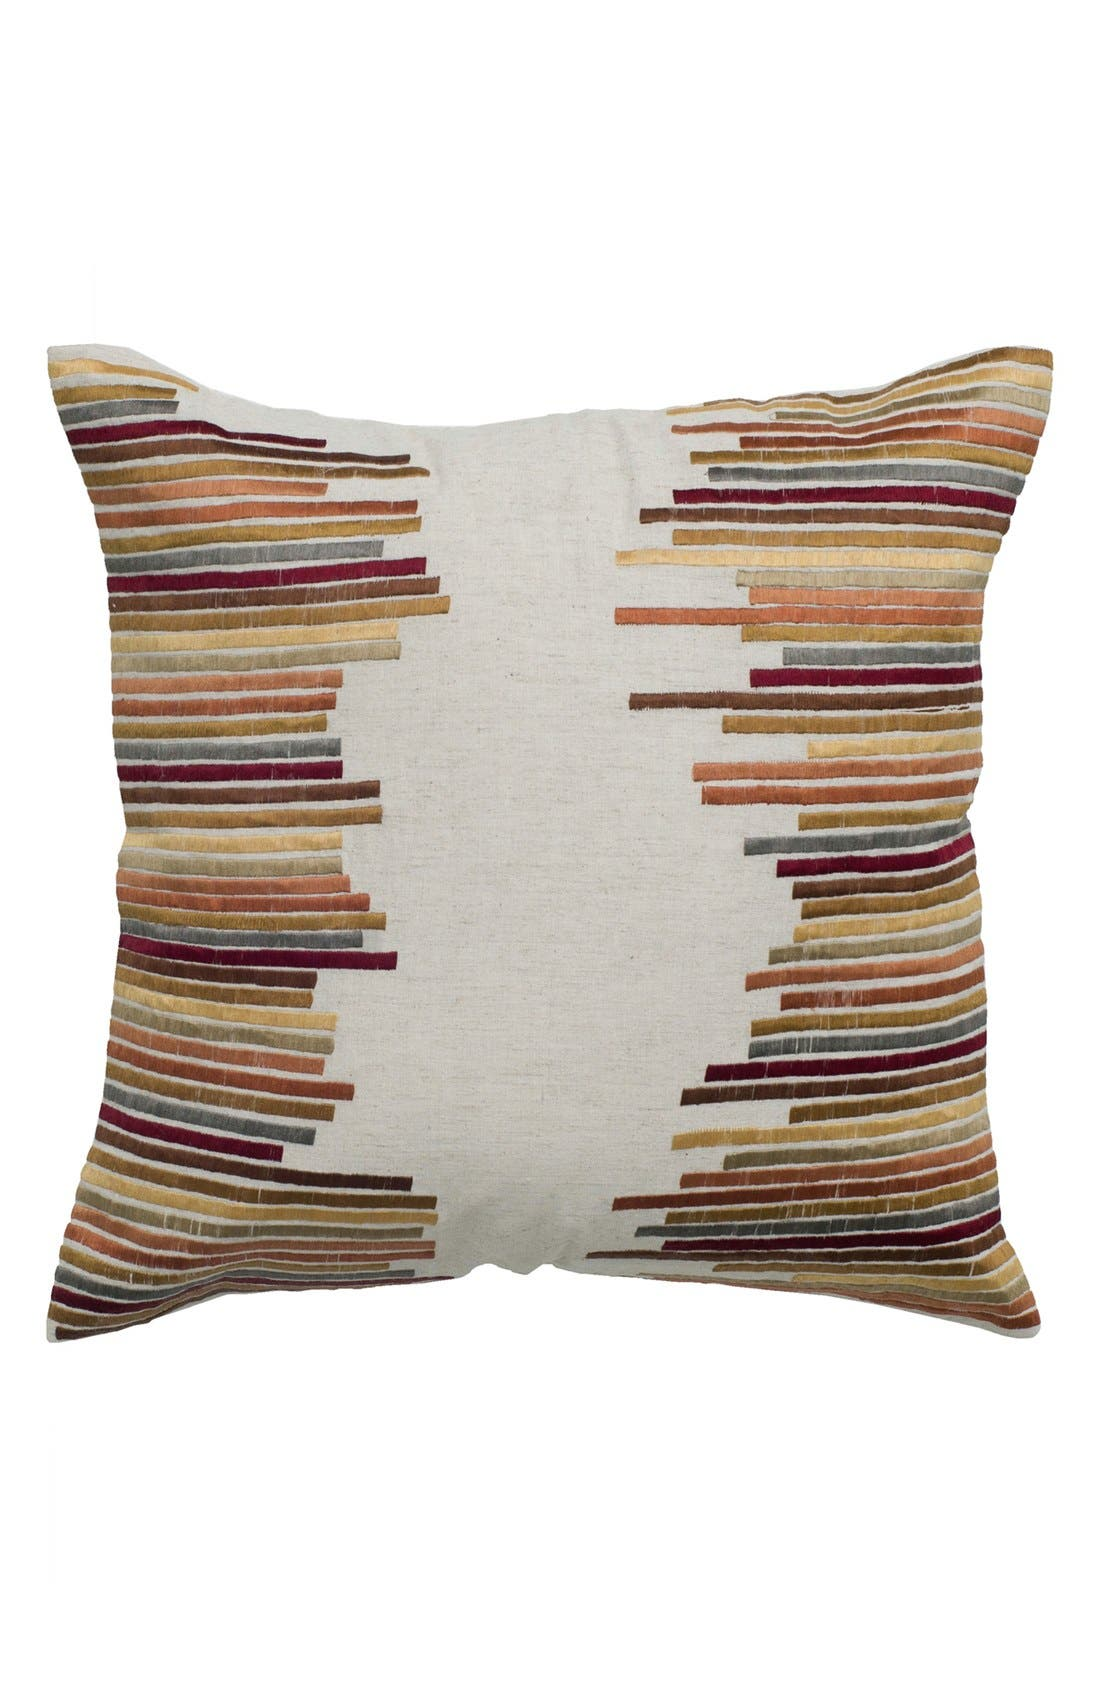 Alternate Image 1 Selected - Rizzy Home 'Jagged Stripe' Pillow